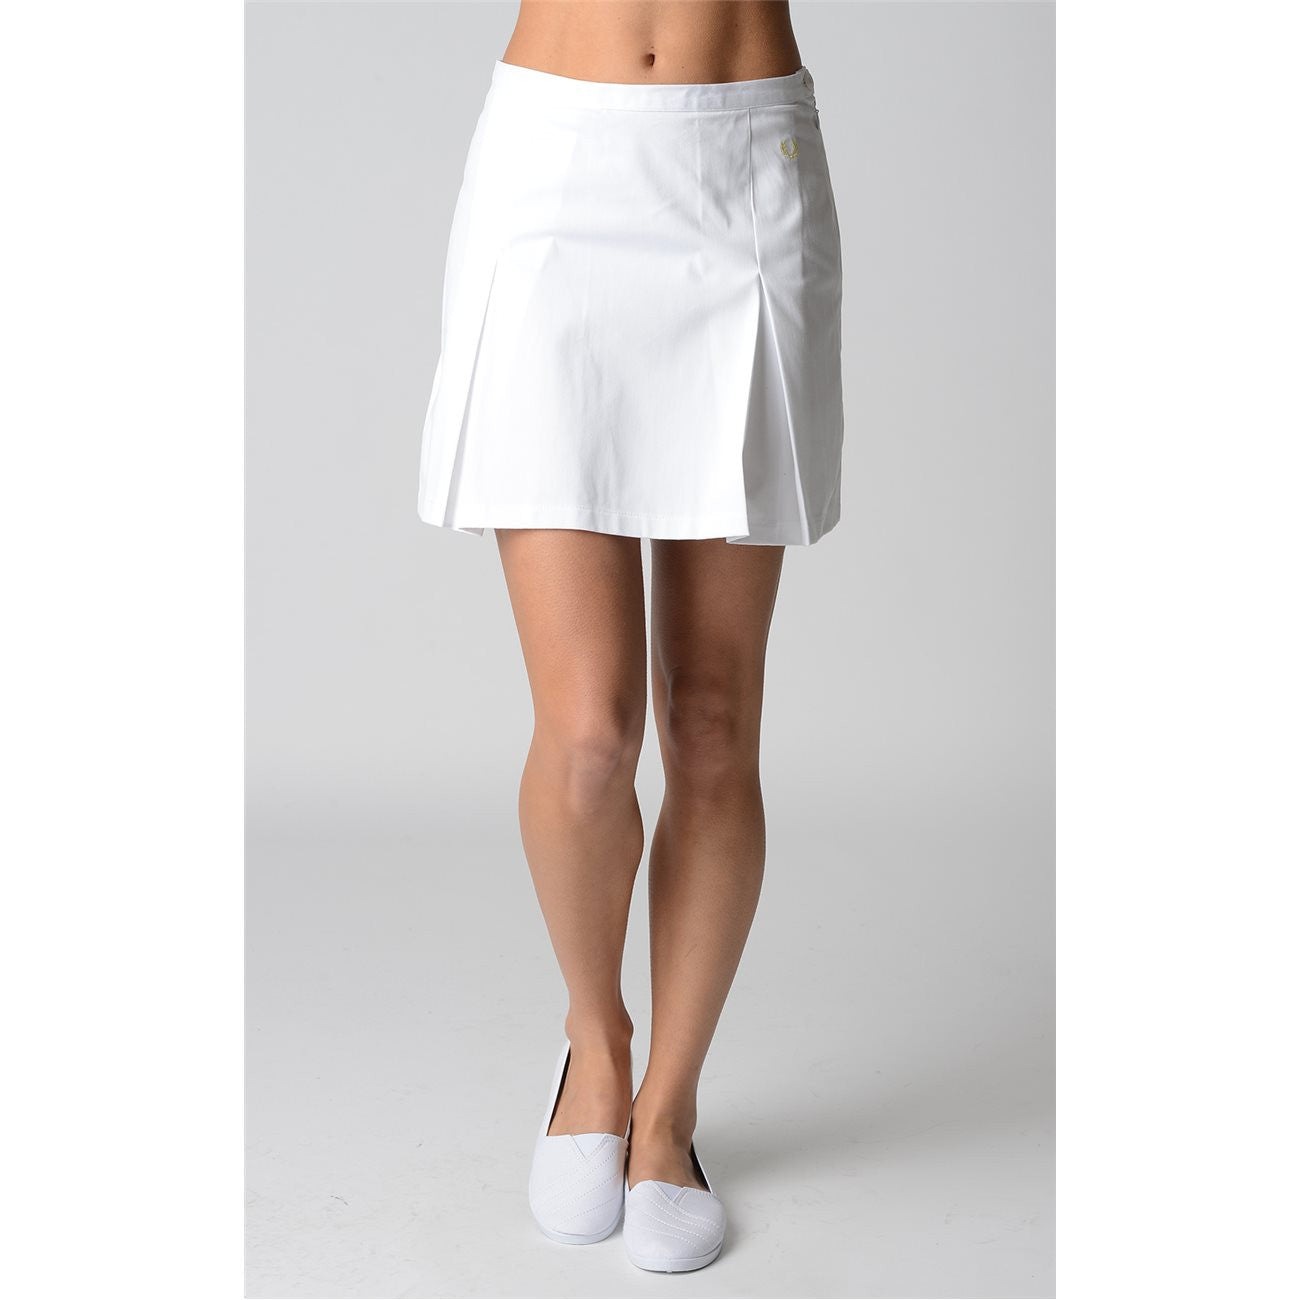 Fred Perry Womens Skirt 31512074 9100 - LeCITY